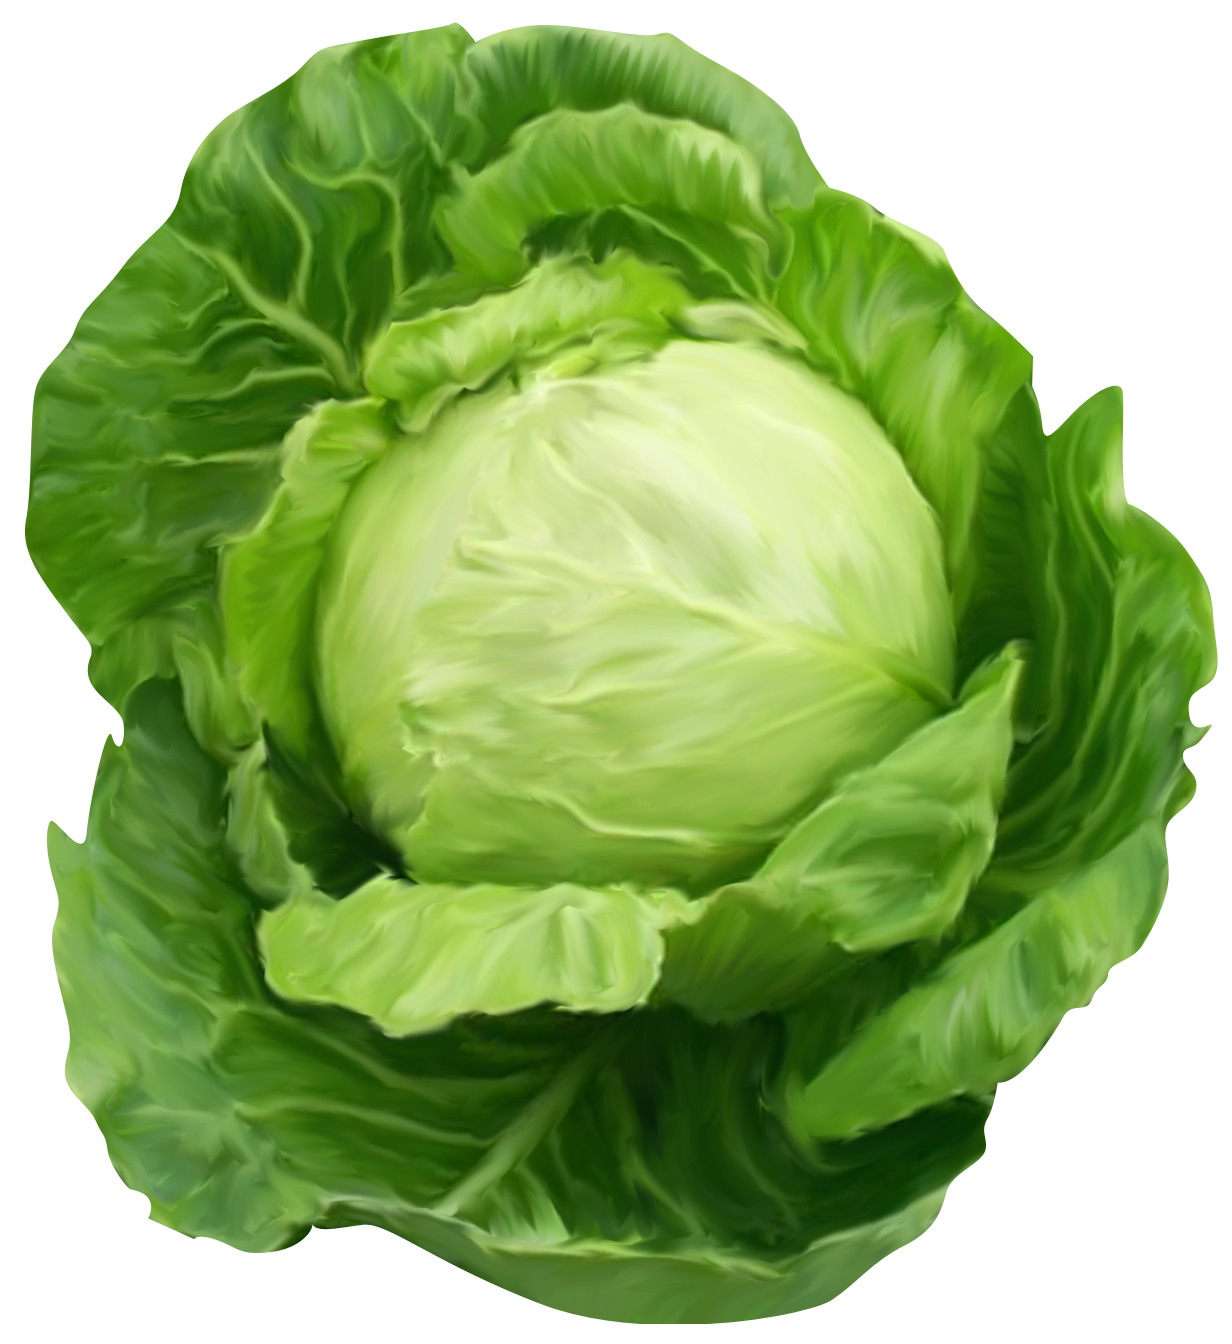 Beautifully Drawn Cabbage 3155.36 Kb